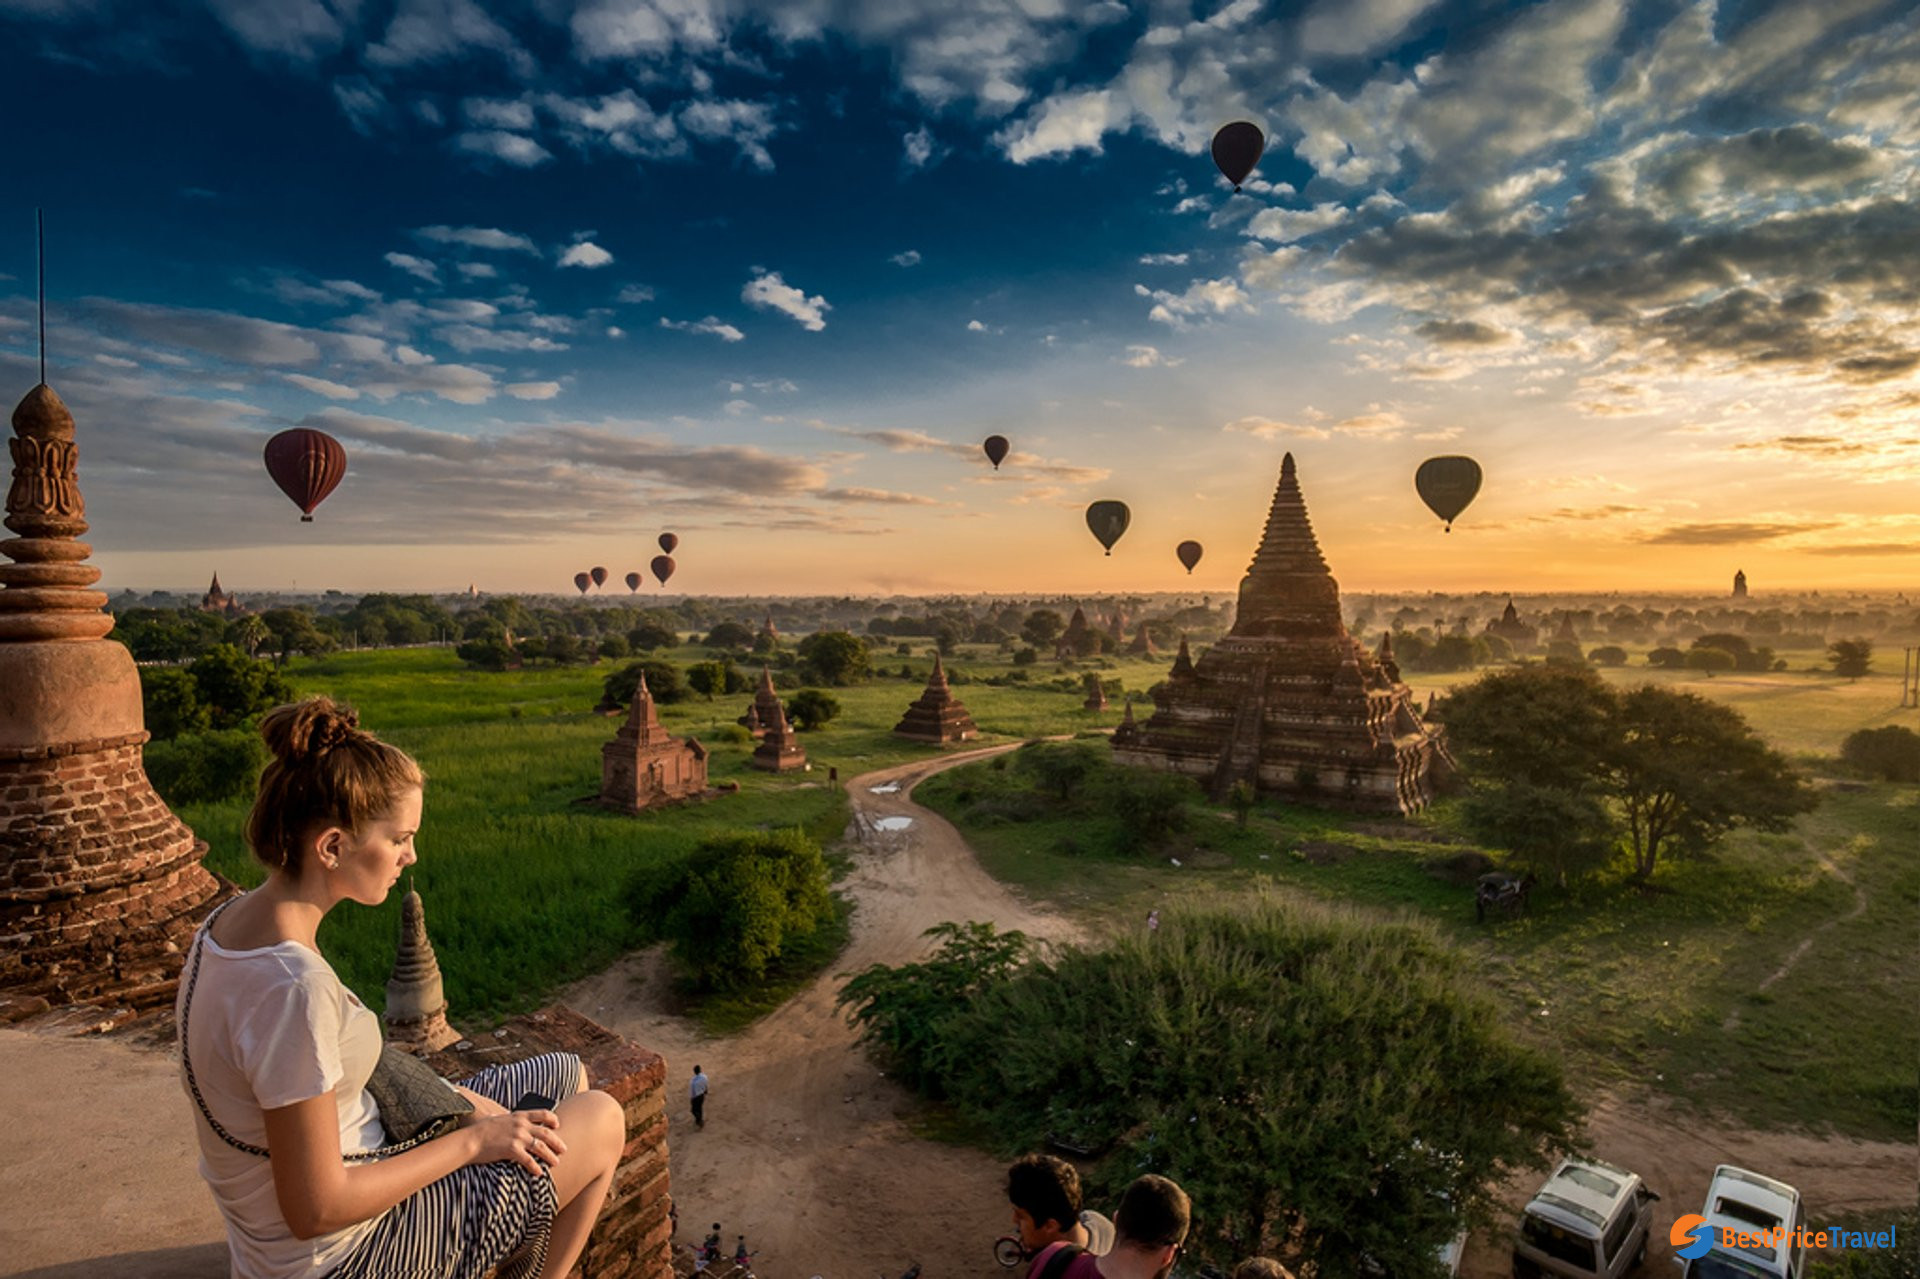 Watching balloon ride over Bagan is a budget way to save travel cost in Myanmar